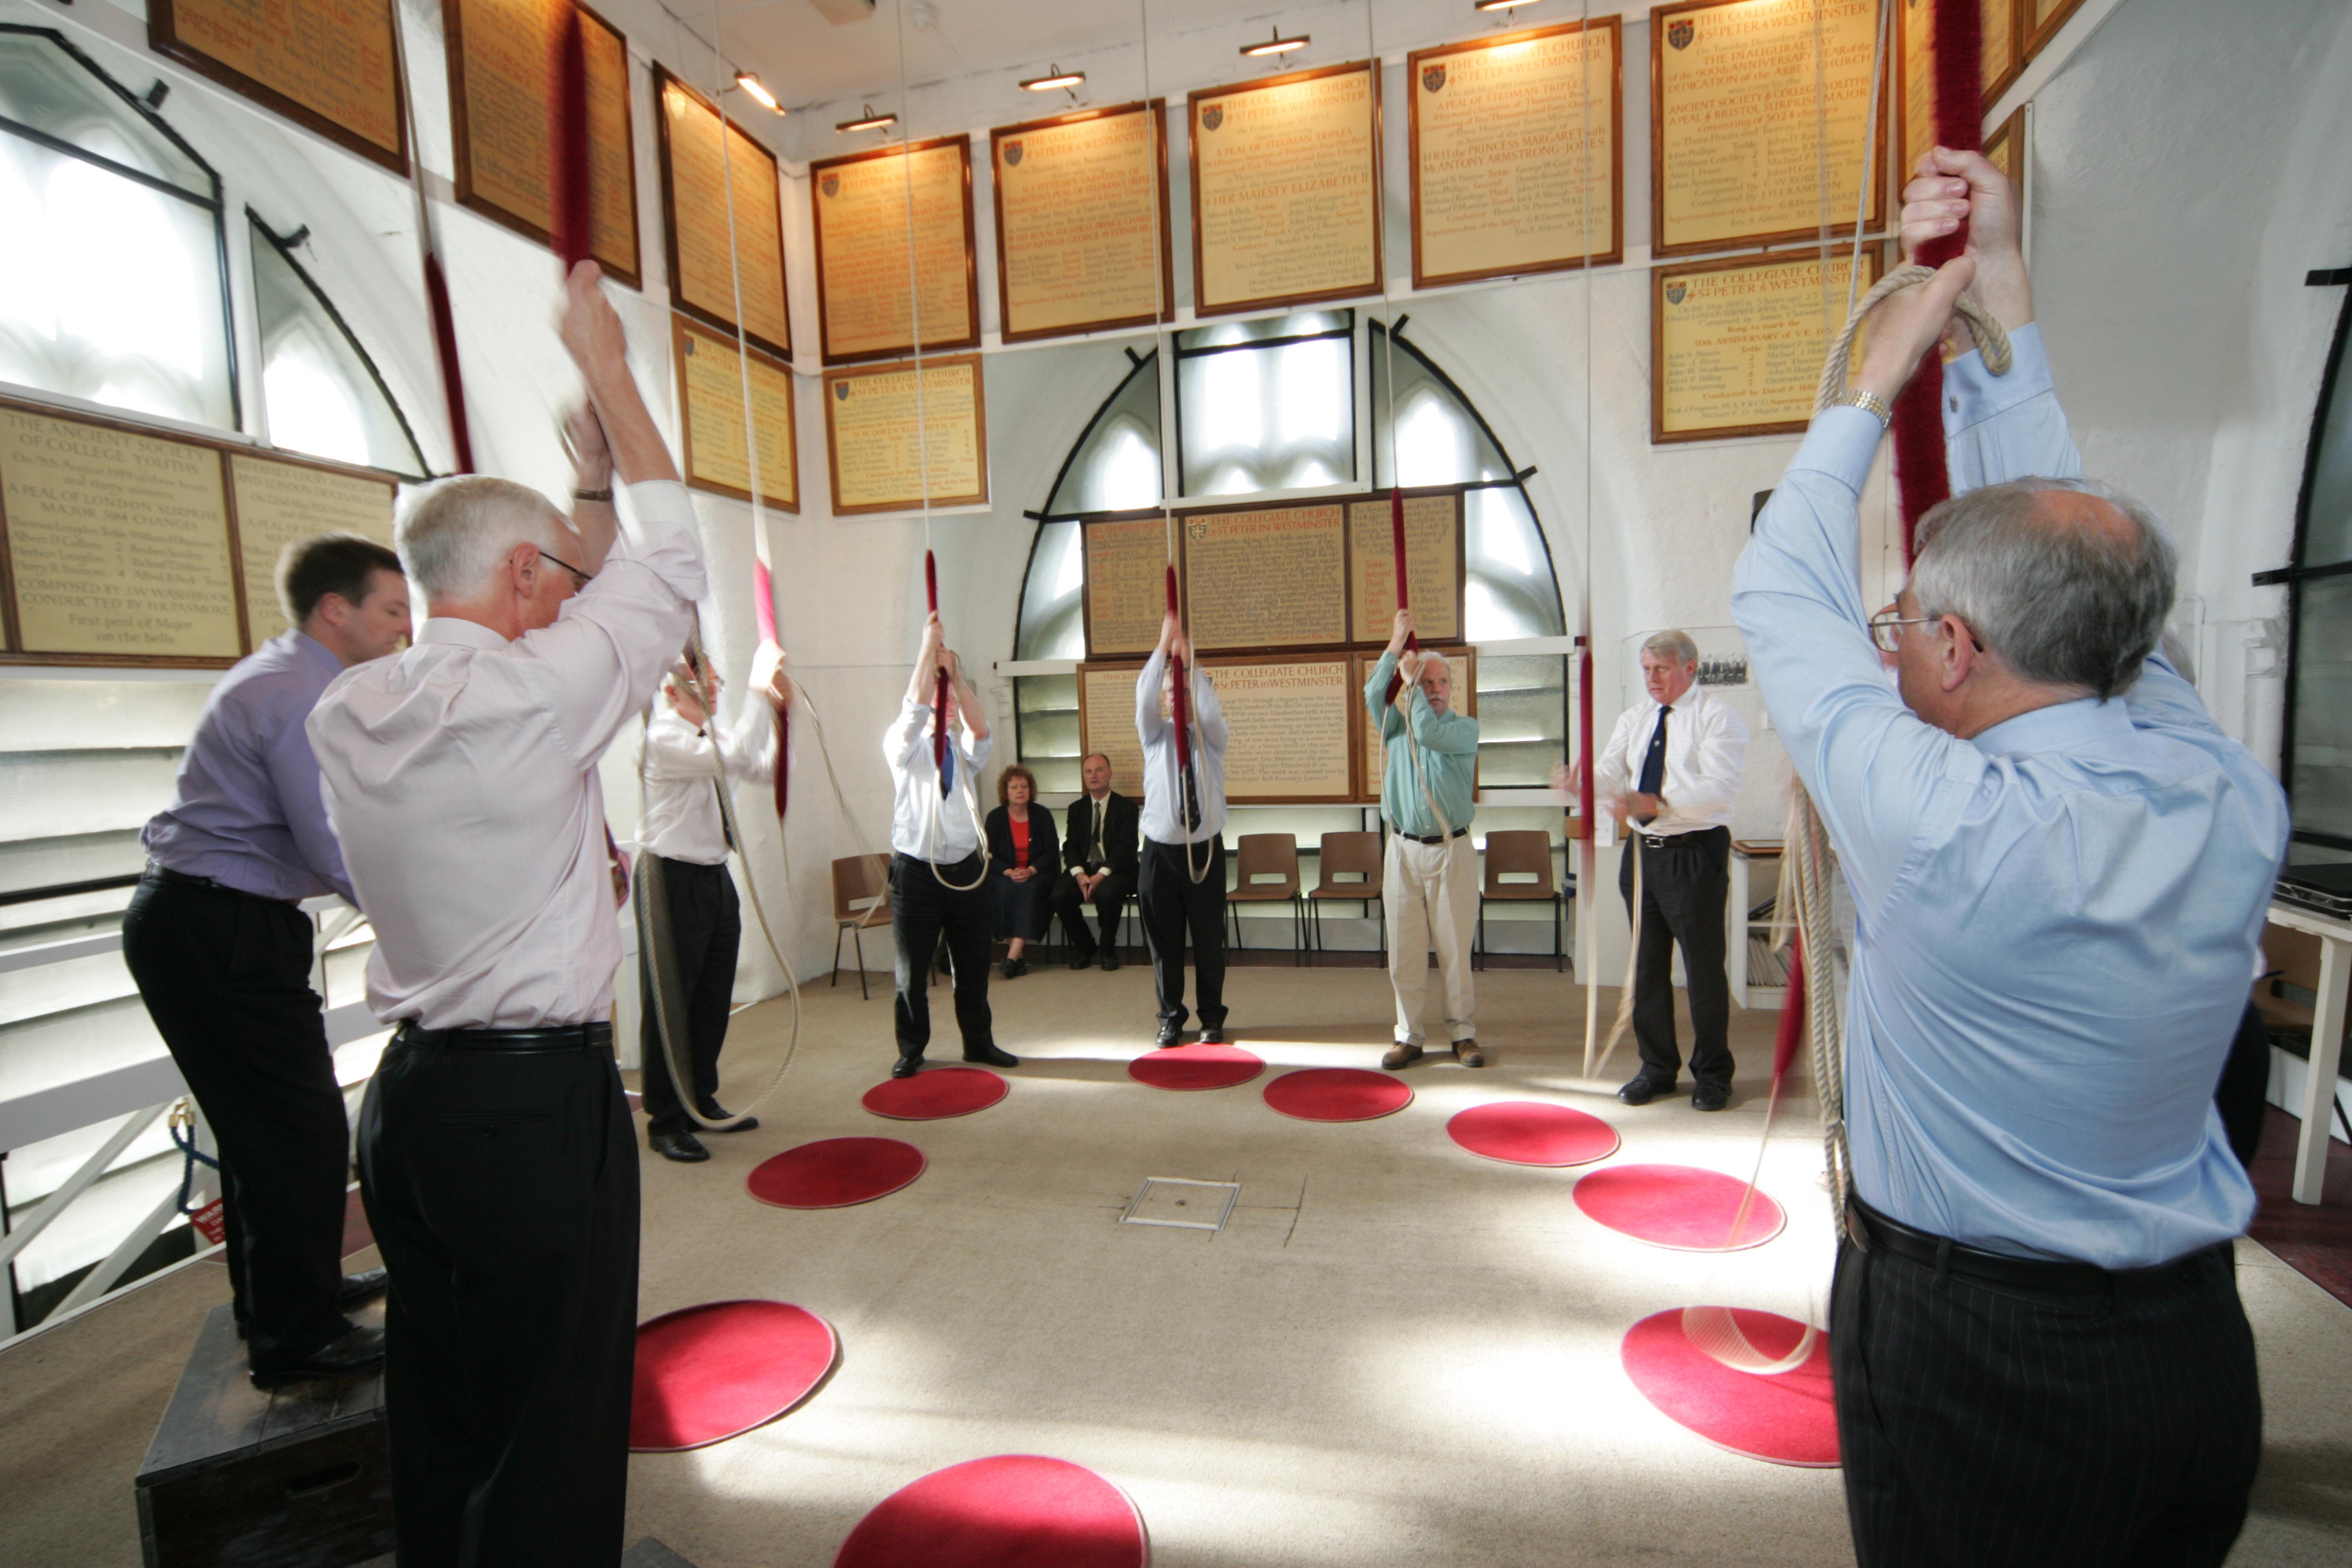 Westminster Abbey Company of Ringers